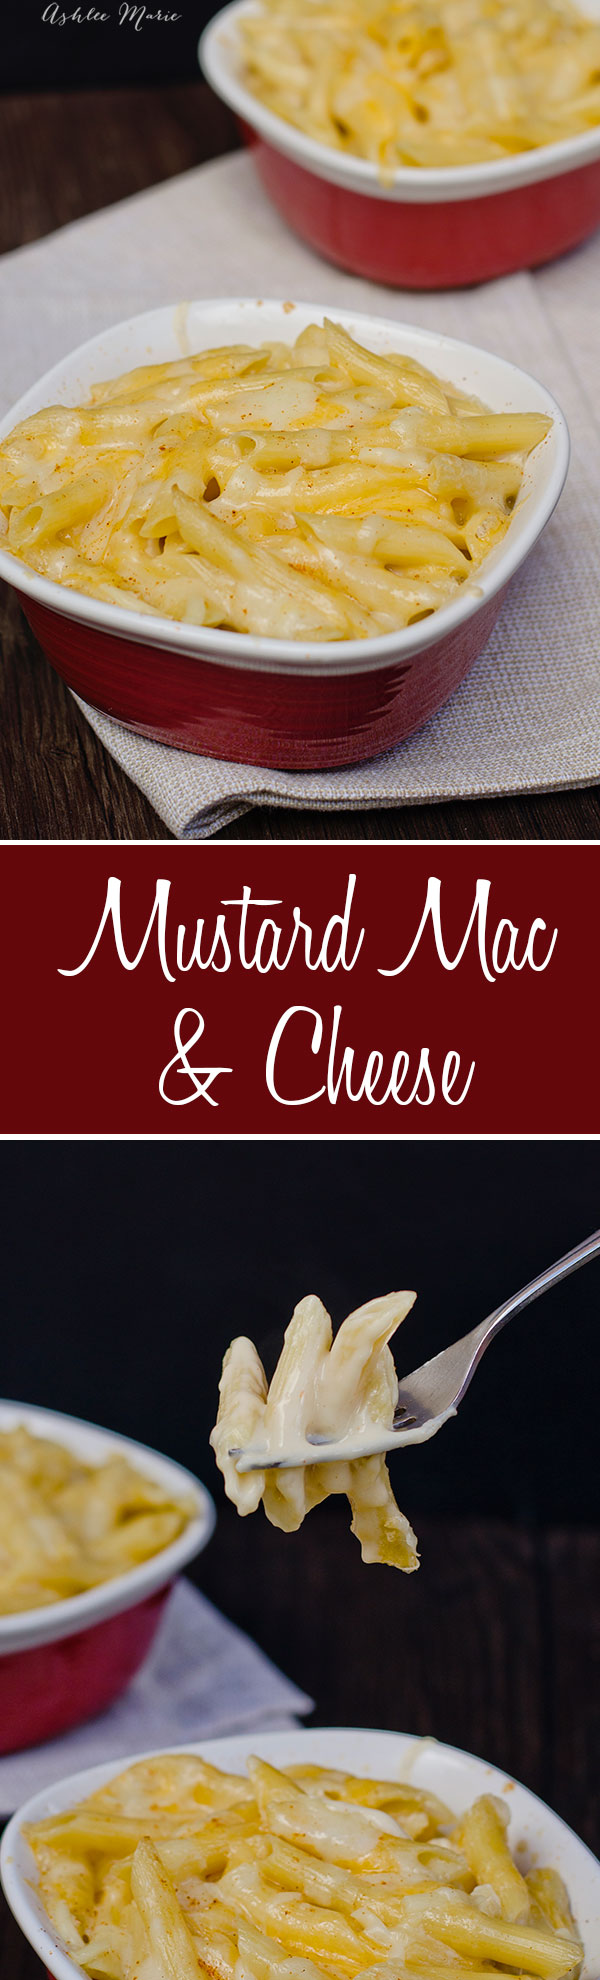 a creamy mac and cheese recipe with 3 different cheeses and a touch of mustard that brings out a wonderful flavor, my kids actually love this more than the boxed mac and cheese dinners